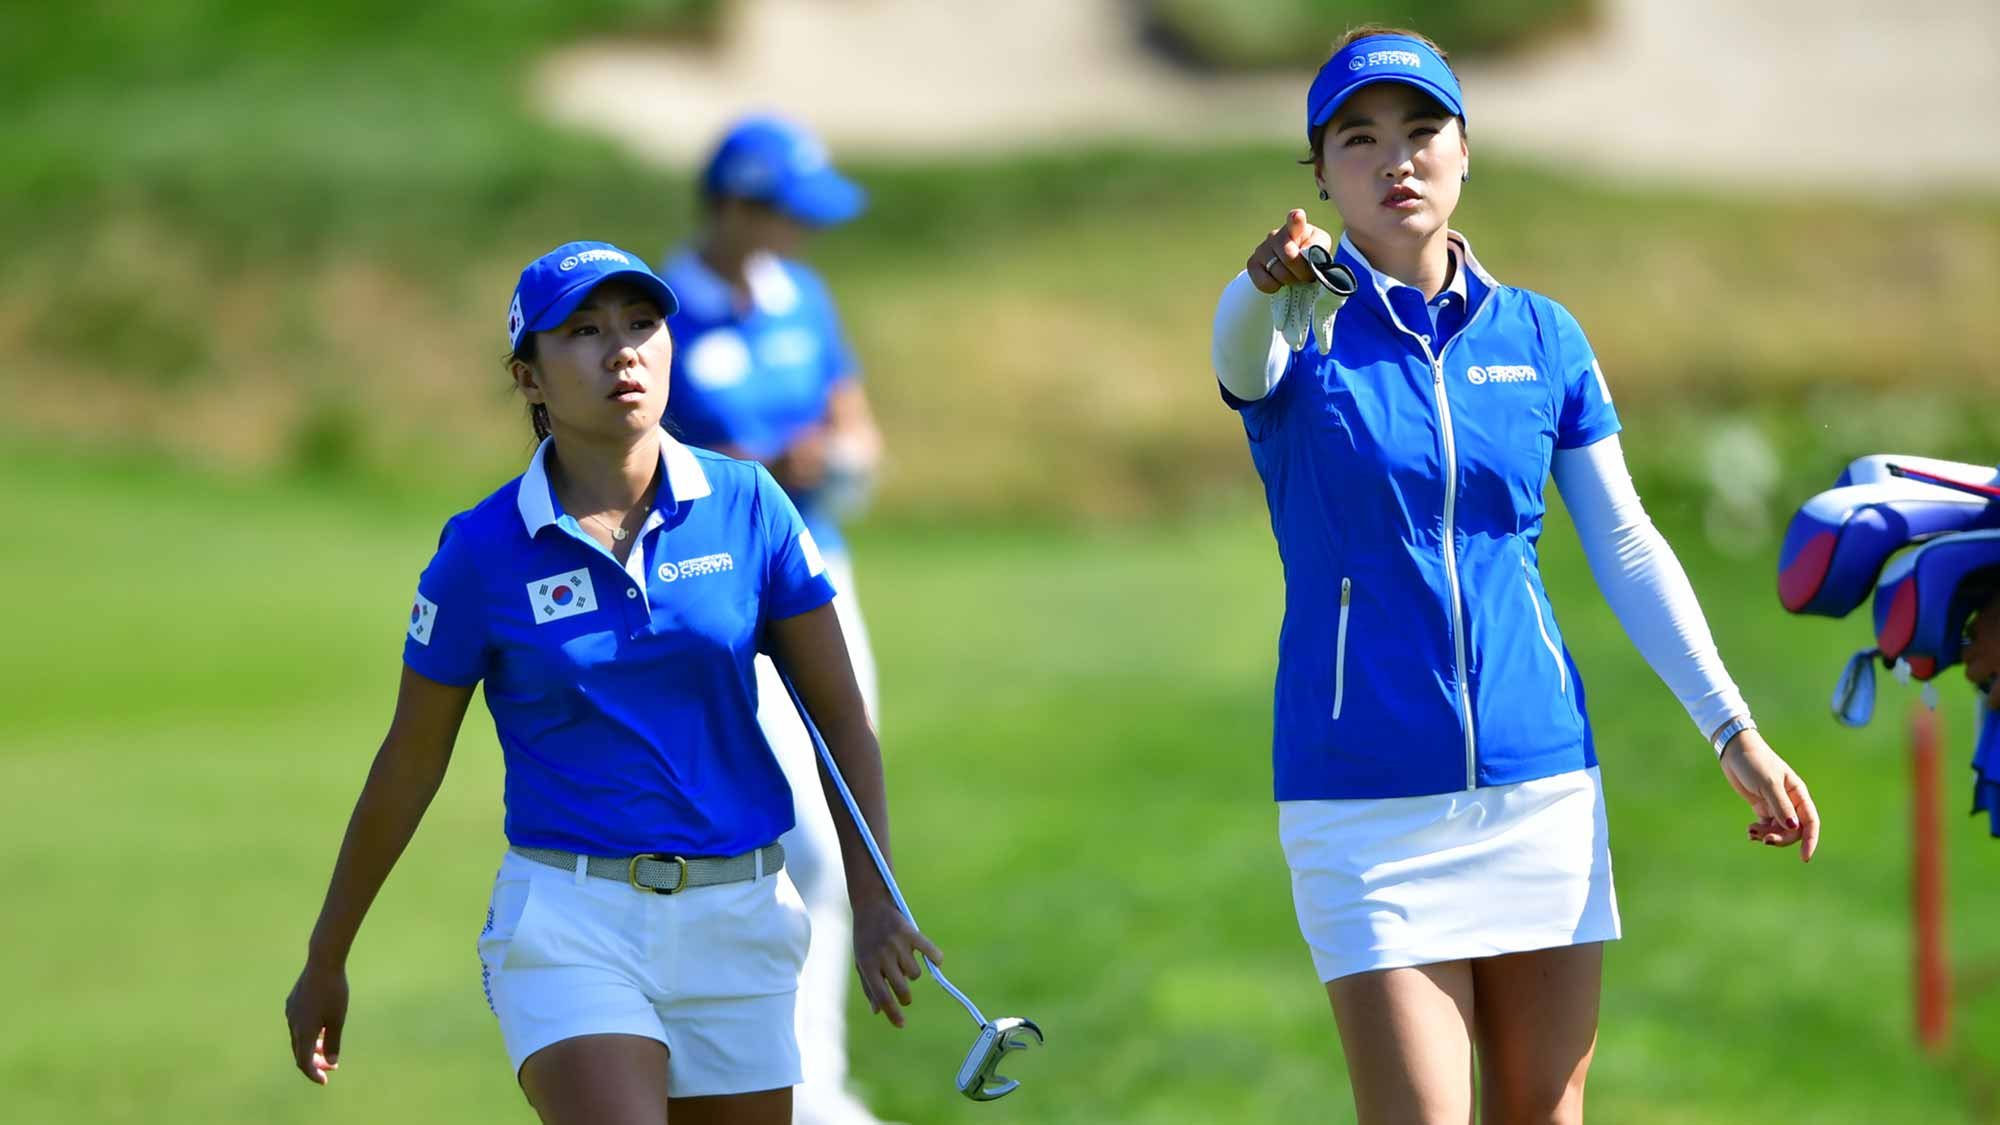 In-Kyung Kim and So Yeon Ryu walk together during the Tuesday practice round at the UL International Crown at Jack Nicklaus Golf Club Korea